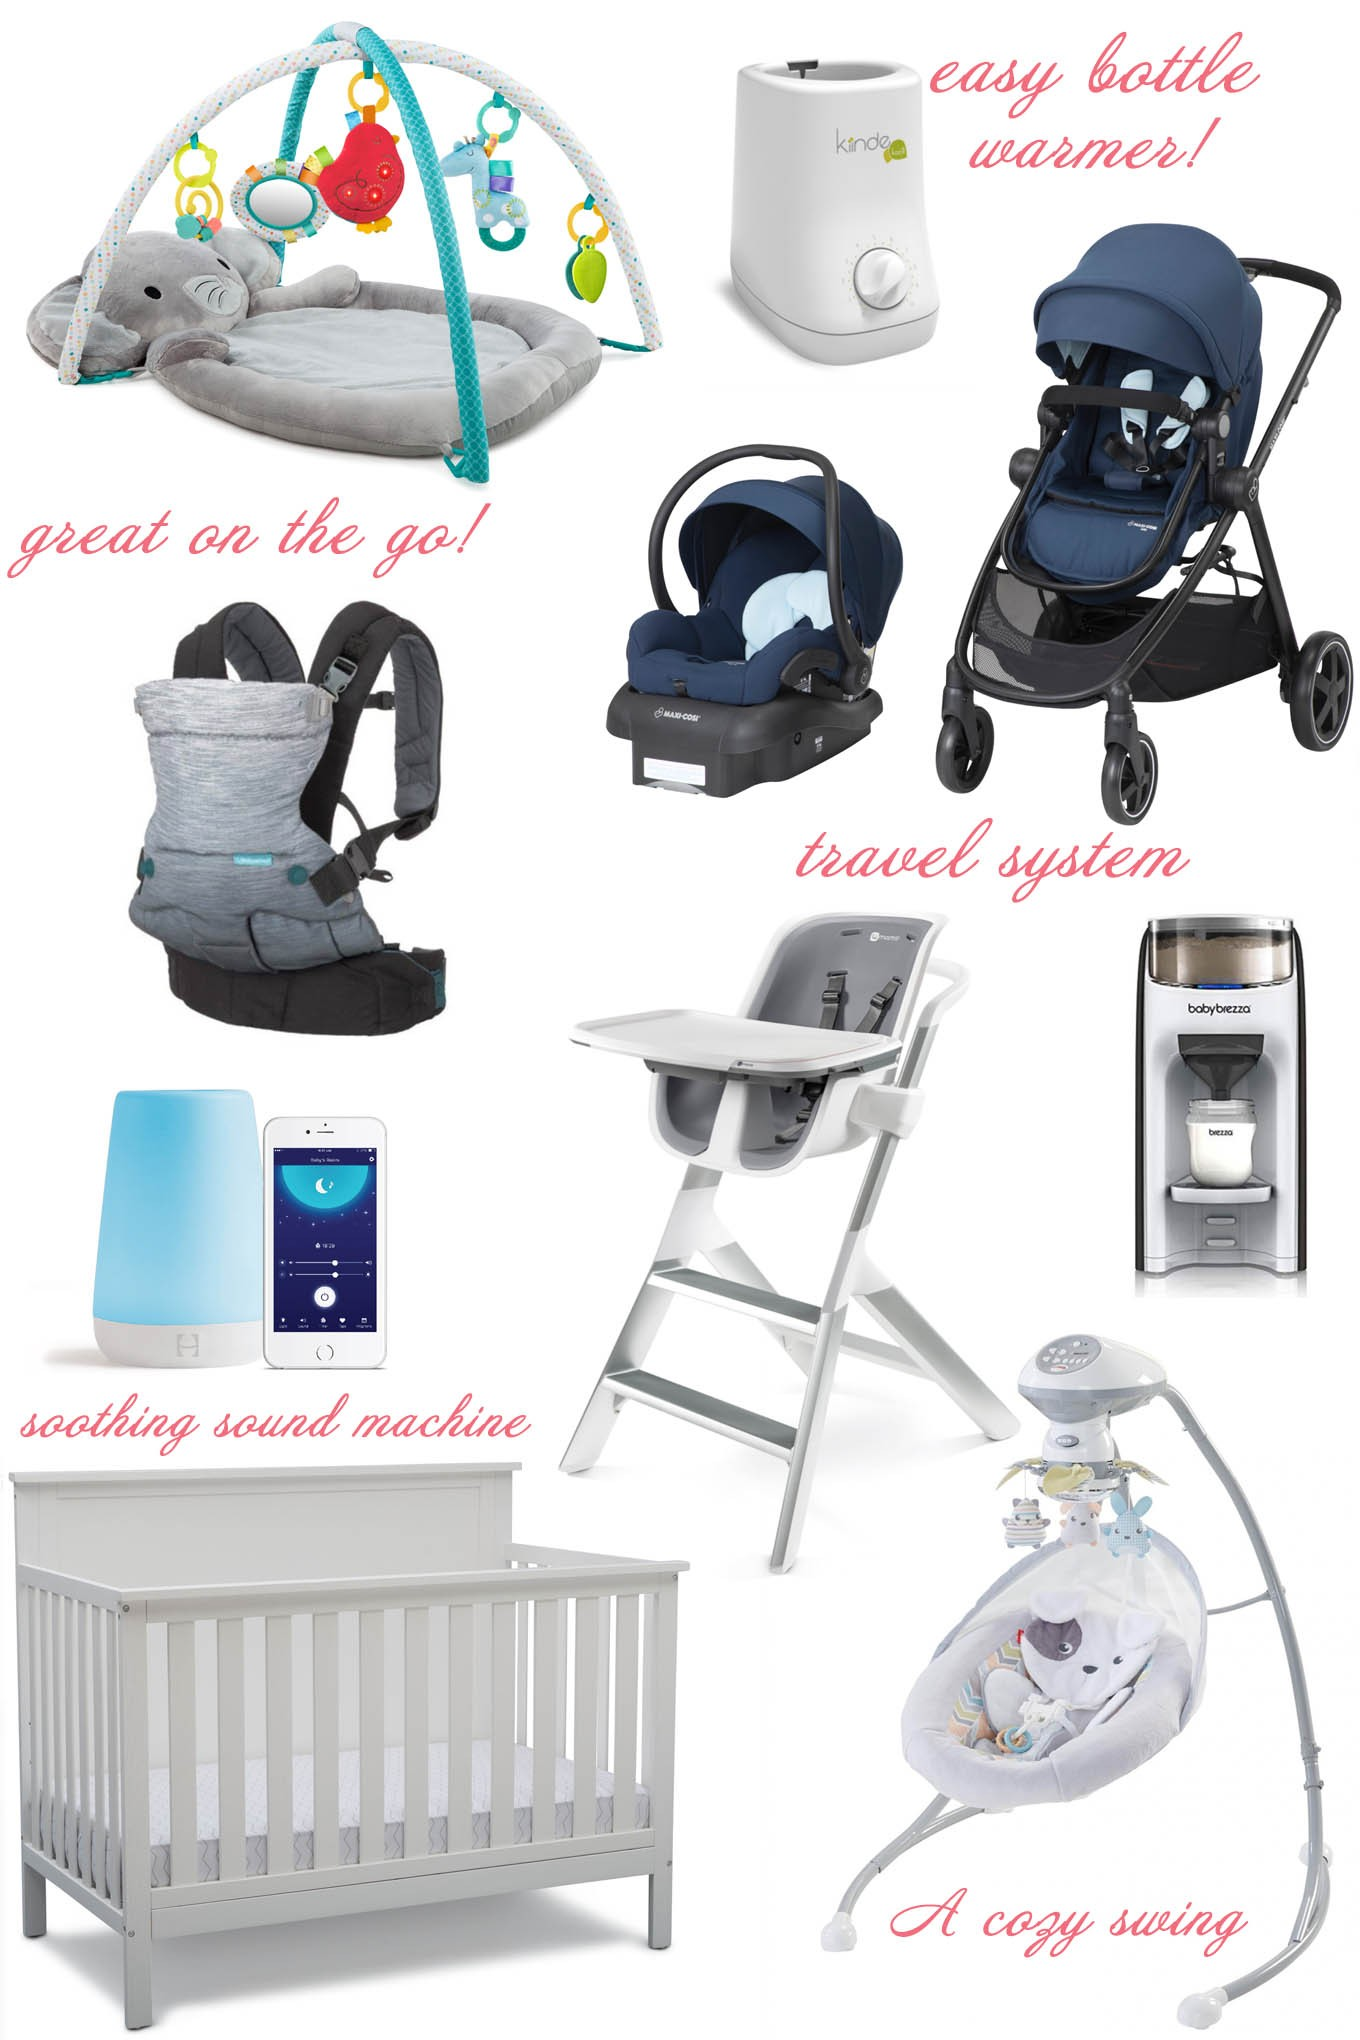 Best of Baby Month: Huge Savings On Baby Gear! by popular Chicago life and style blog, Glass of Glam: collage image of a play mat, bottler warmer, stroller, car seat, high chair, crib, sound machine, and baby swing.